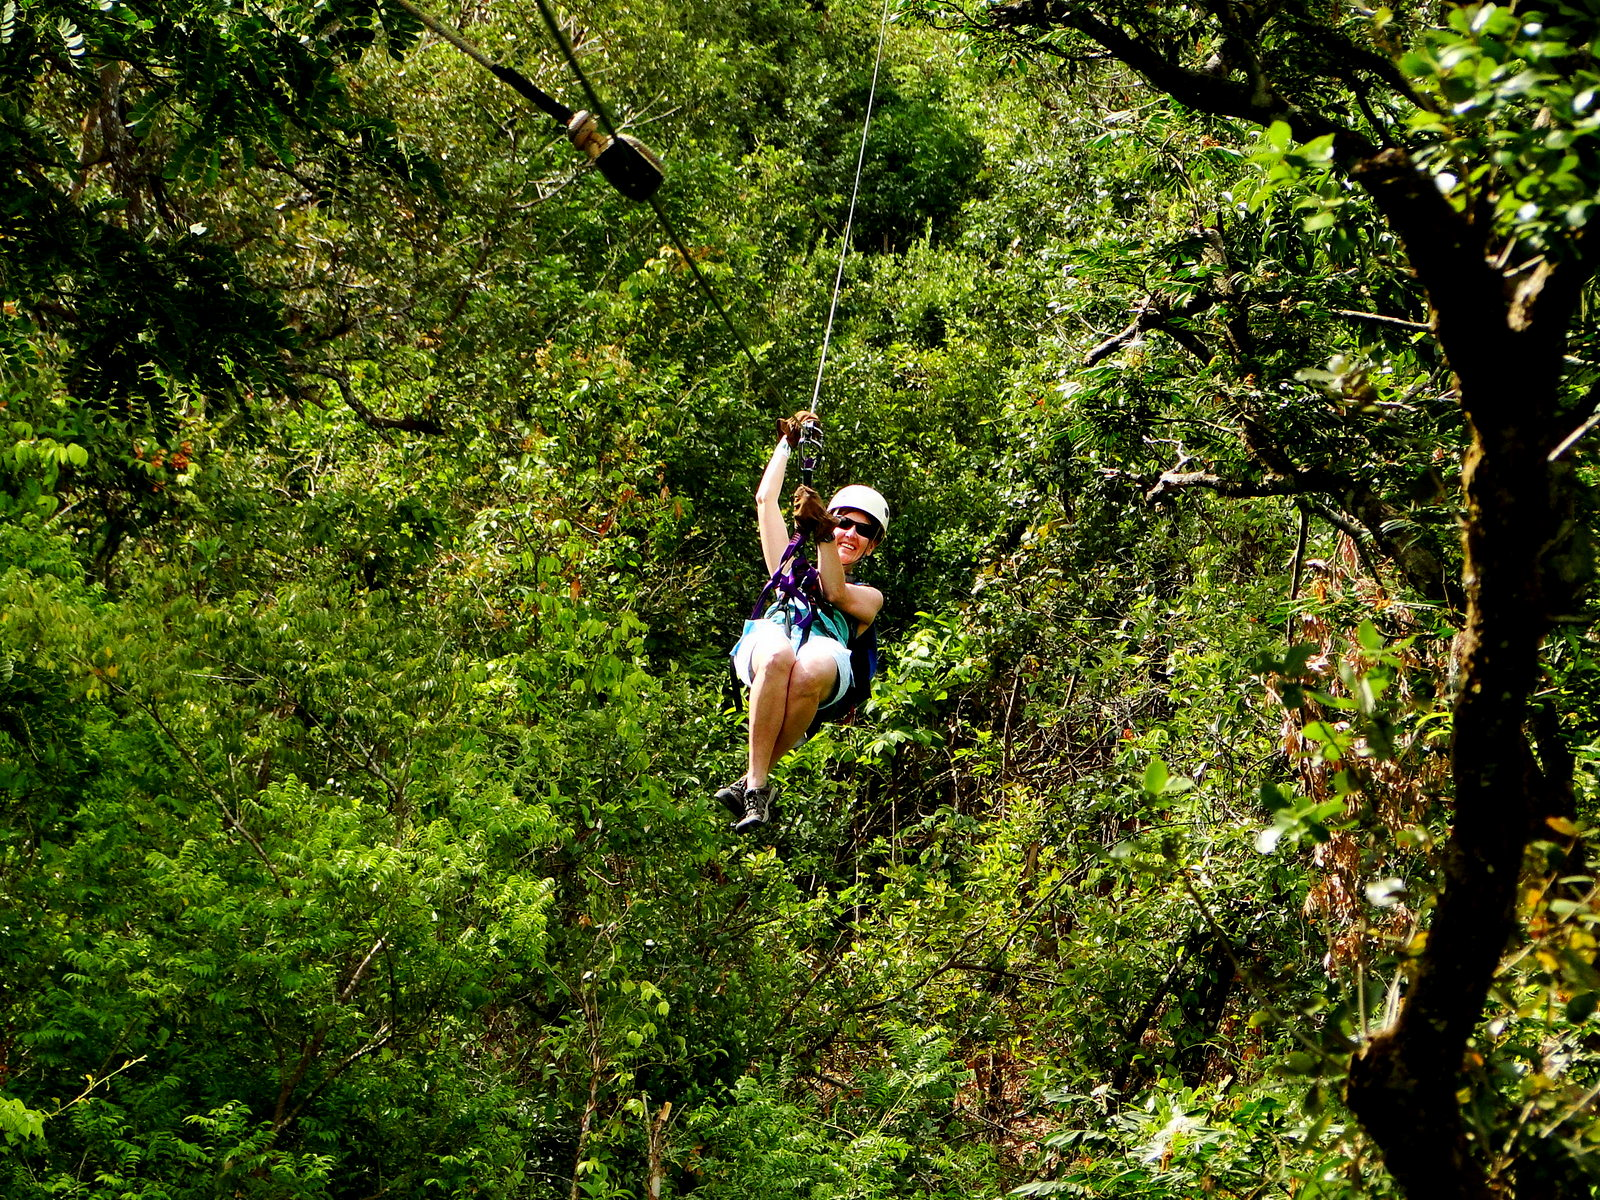 zipline & Canopy Tours History and Origins